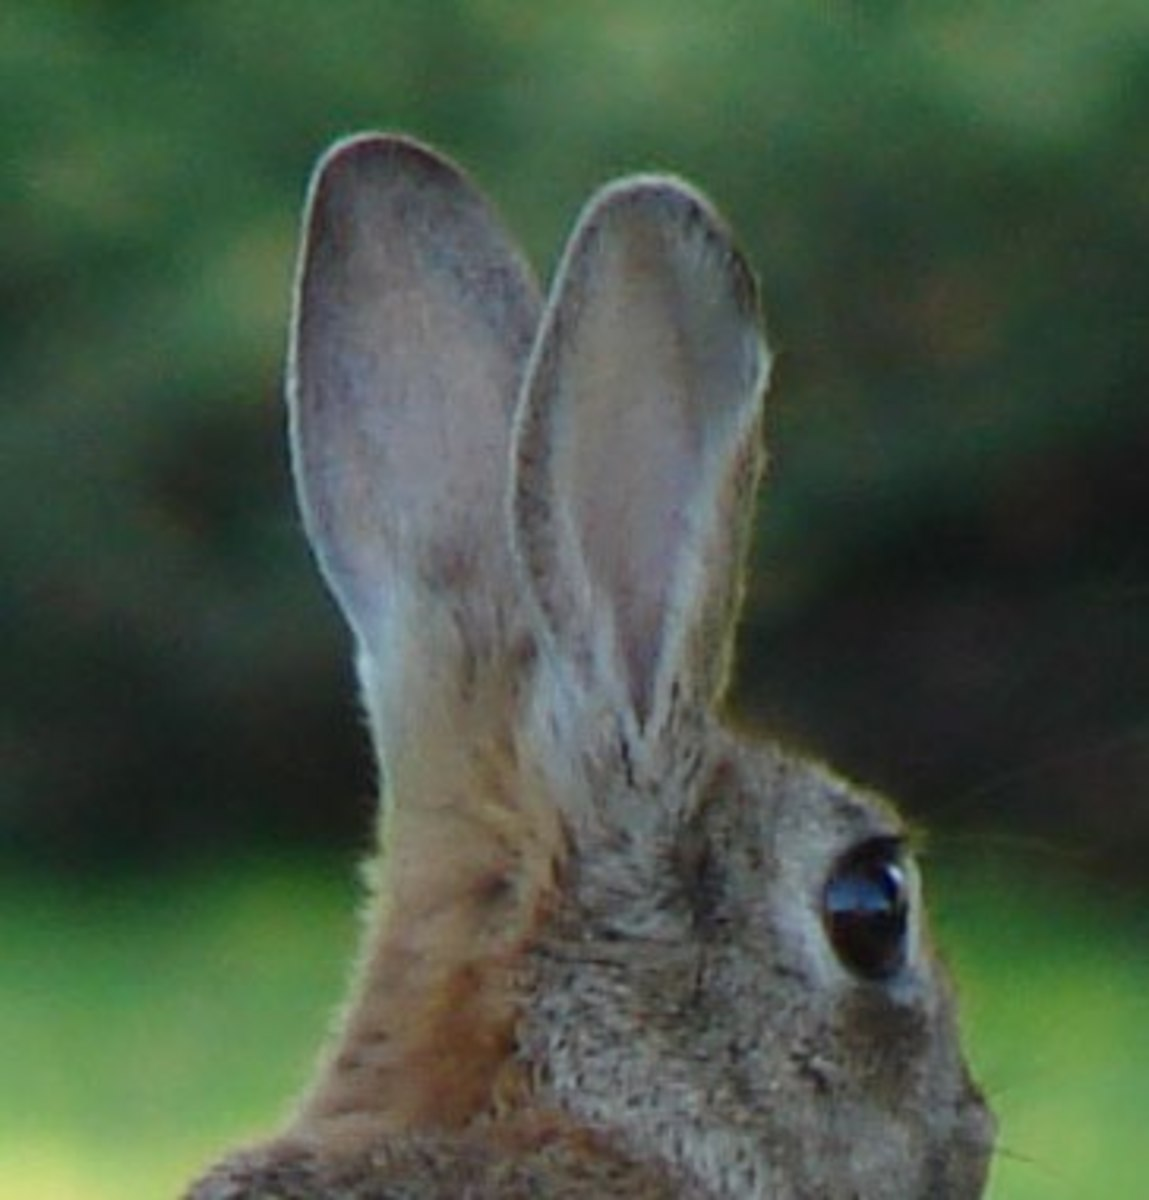 A rabbit's defenses depend on its ability to see, hear, and flee with speed and agility.